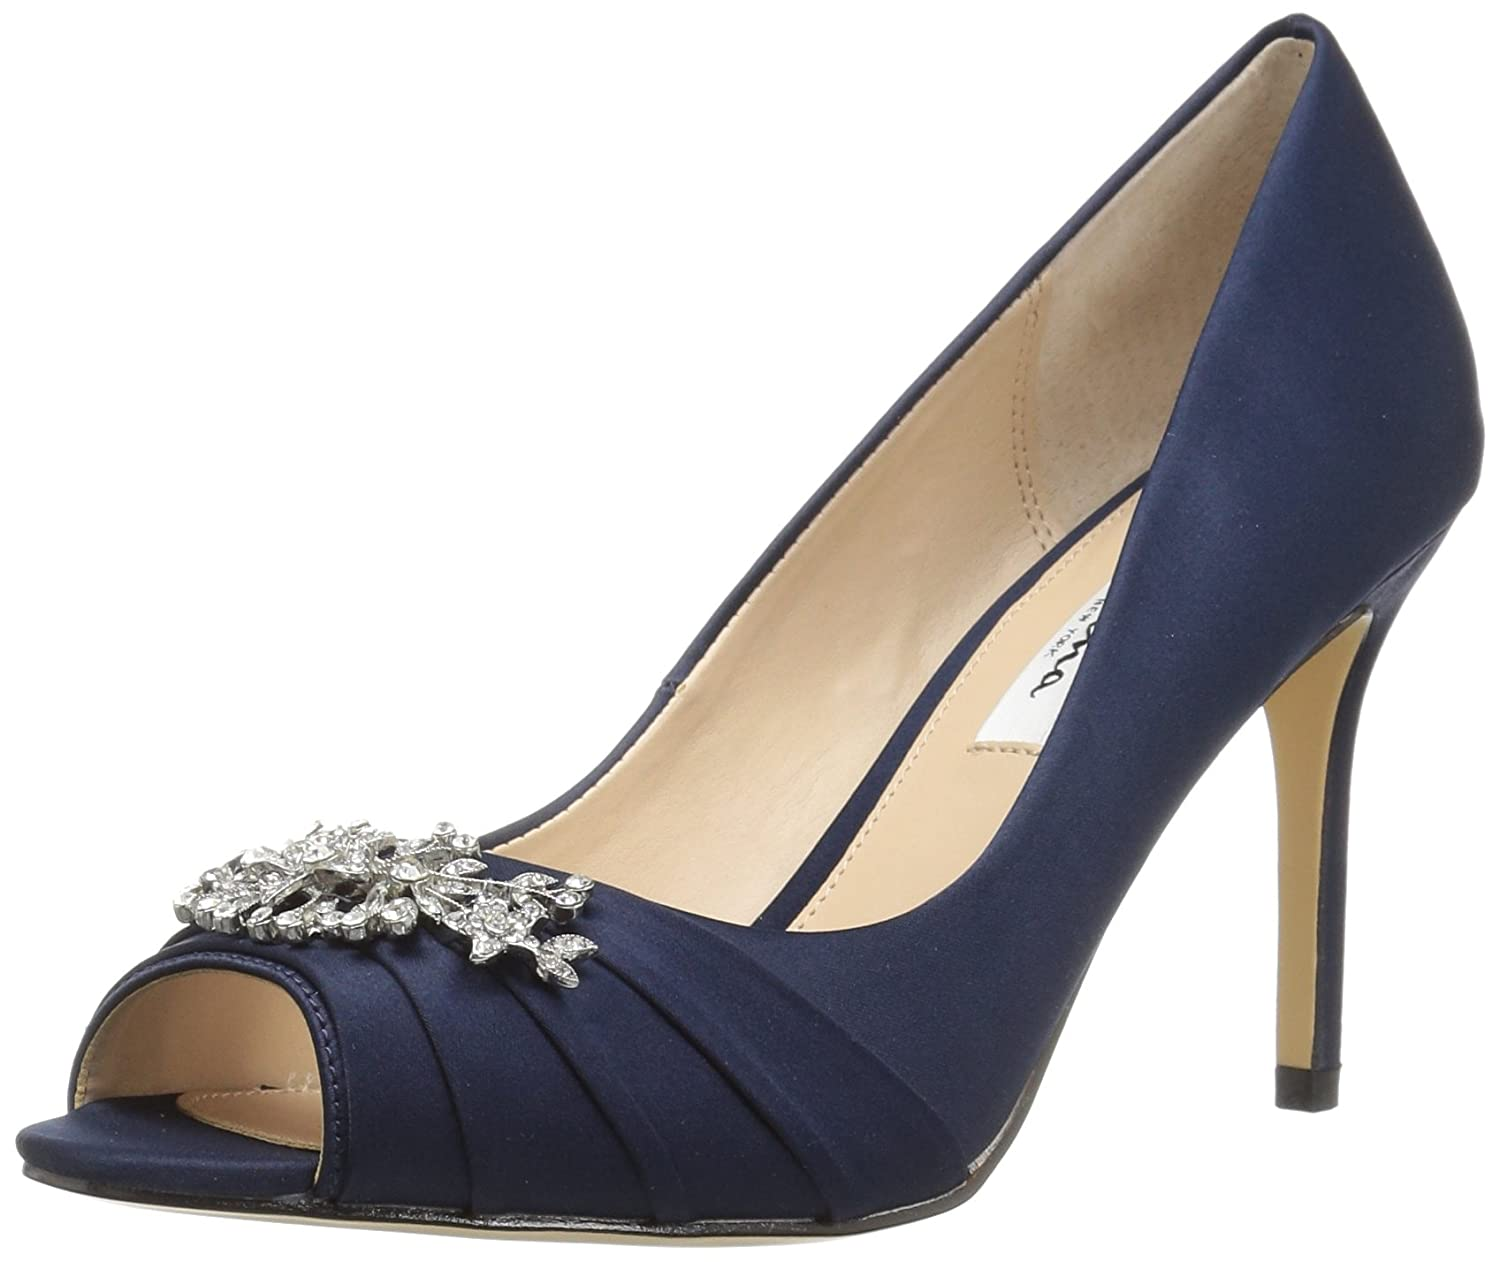 Nina Women's Rumina Dress Pump B0744S84V4 7 B(M) US|Ls-new Navy